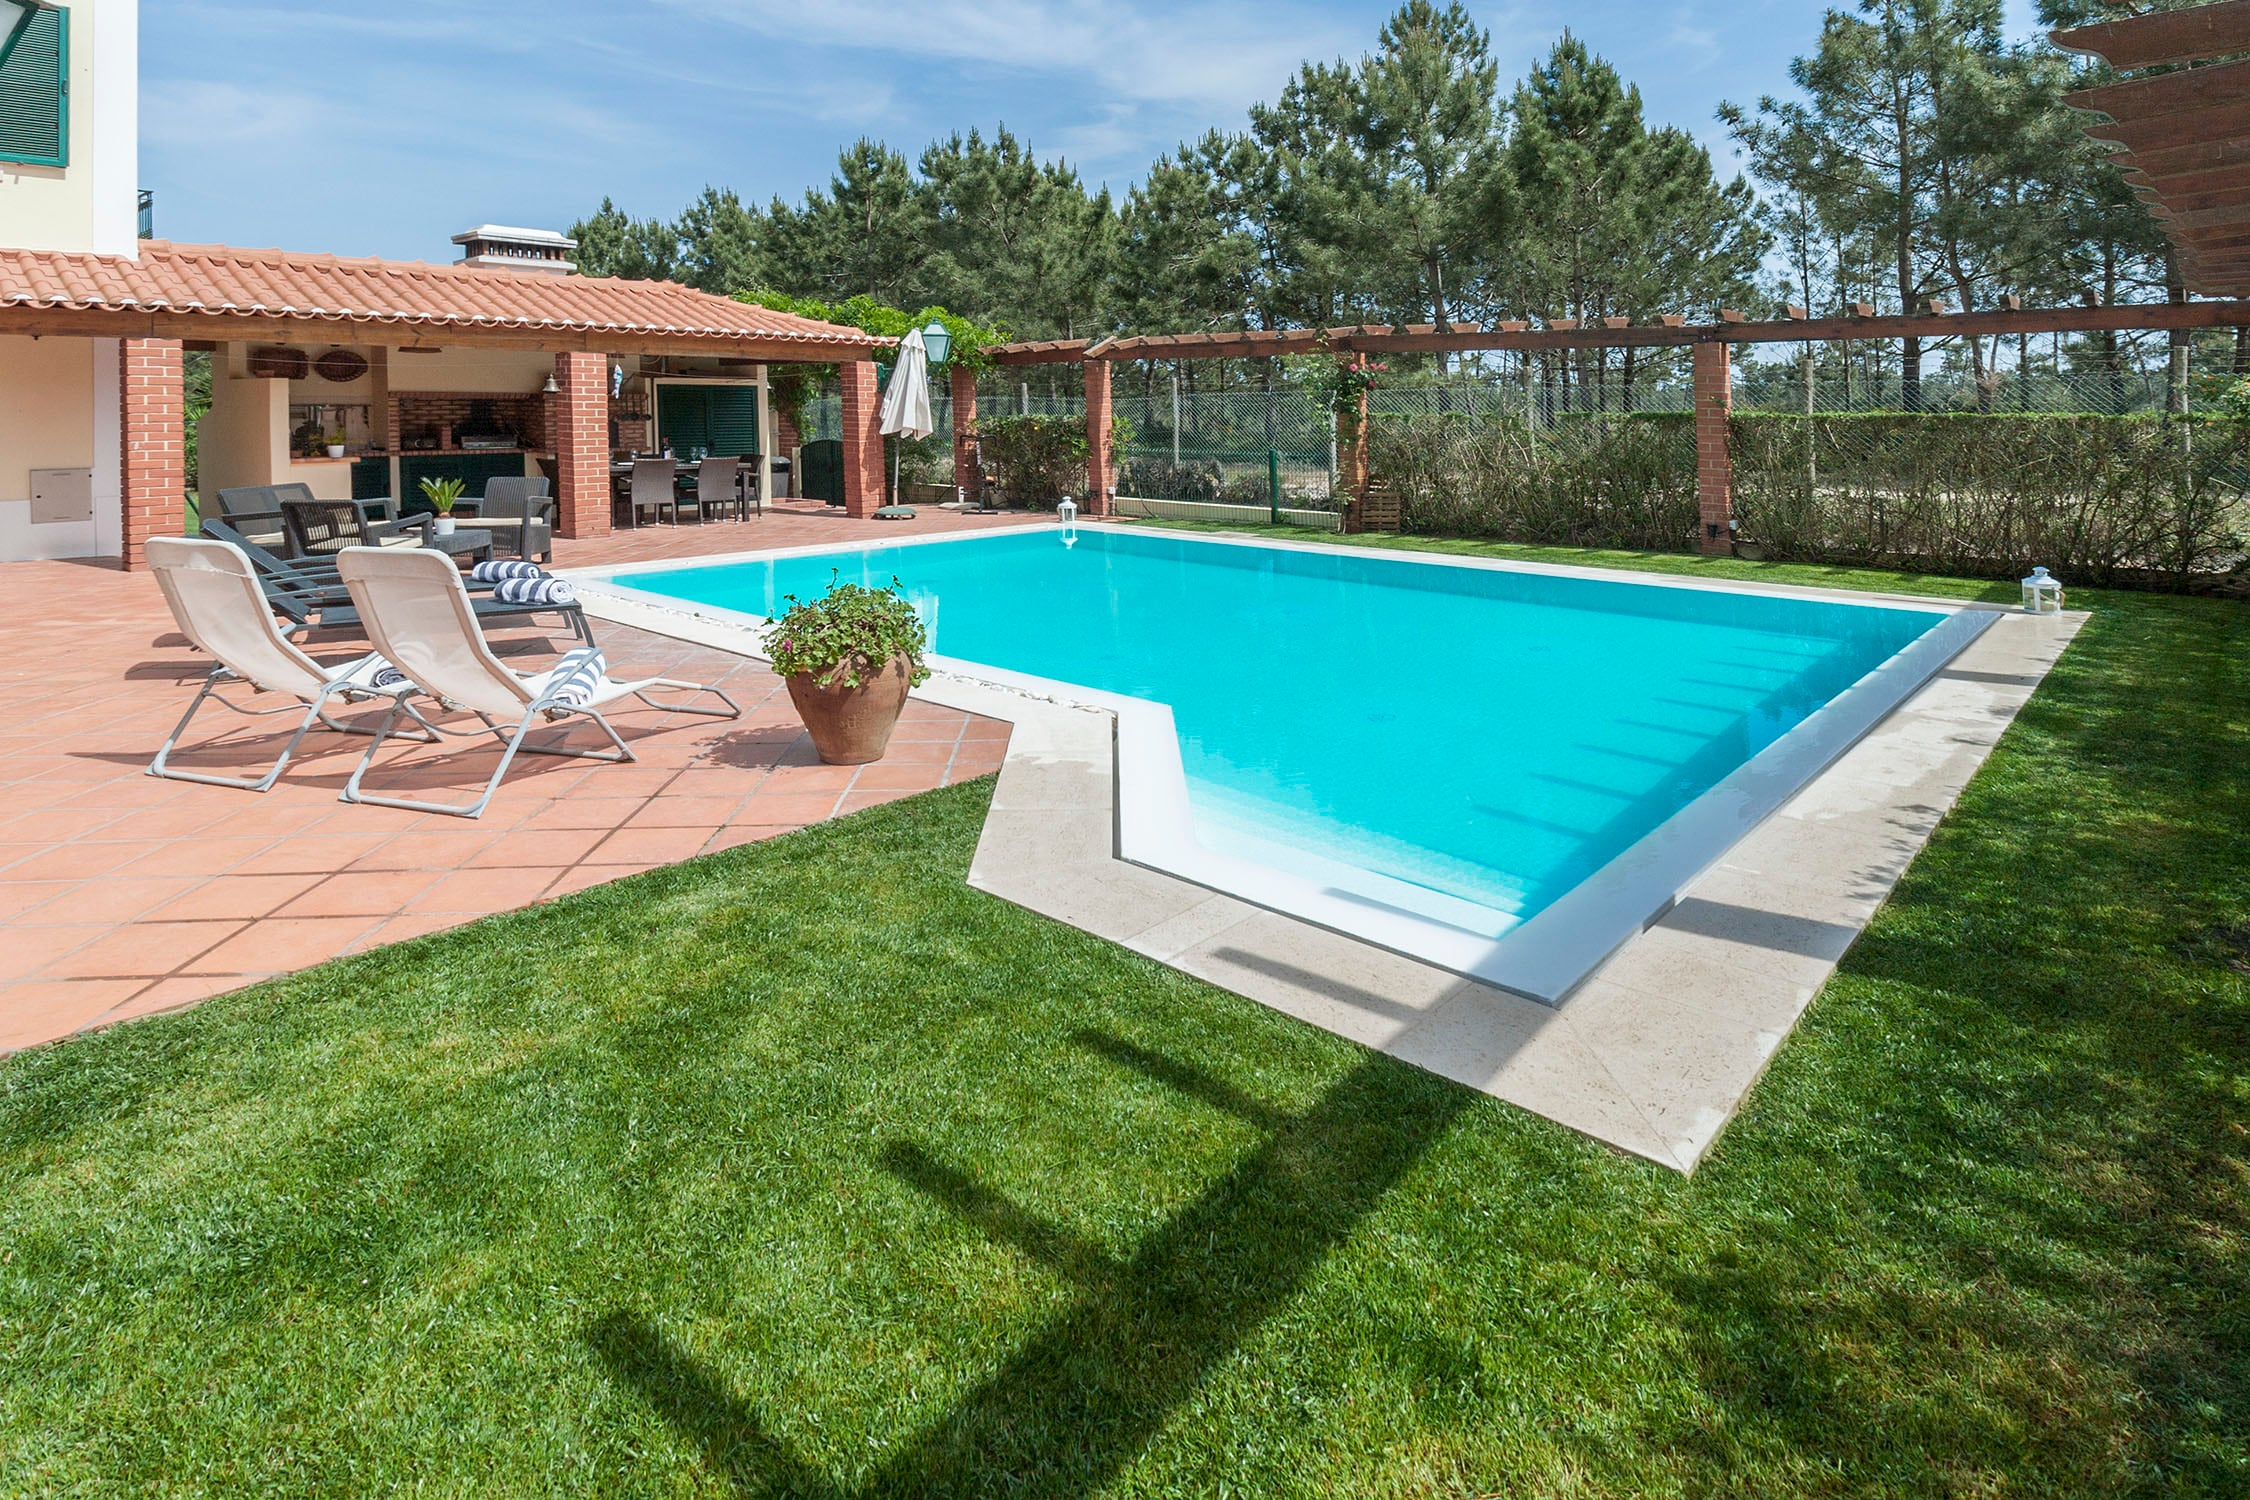 Property Image 2 - Delightful villa with private pool in Aroeira Golf Resort